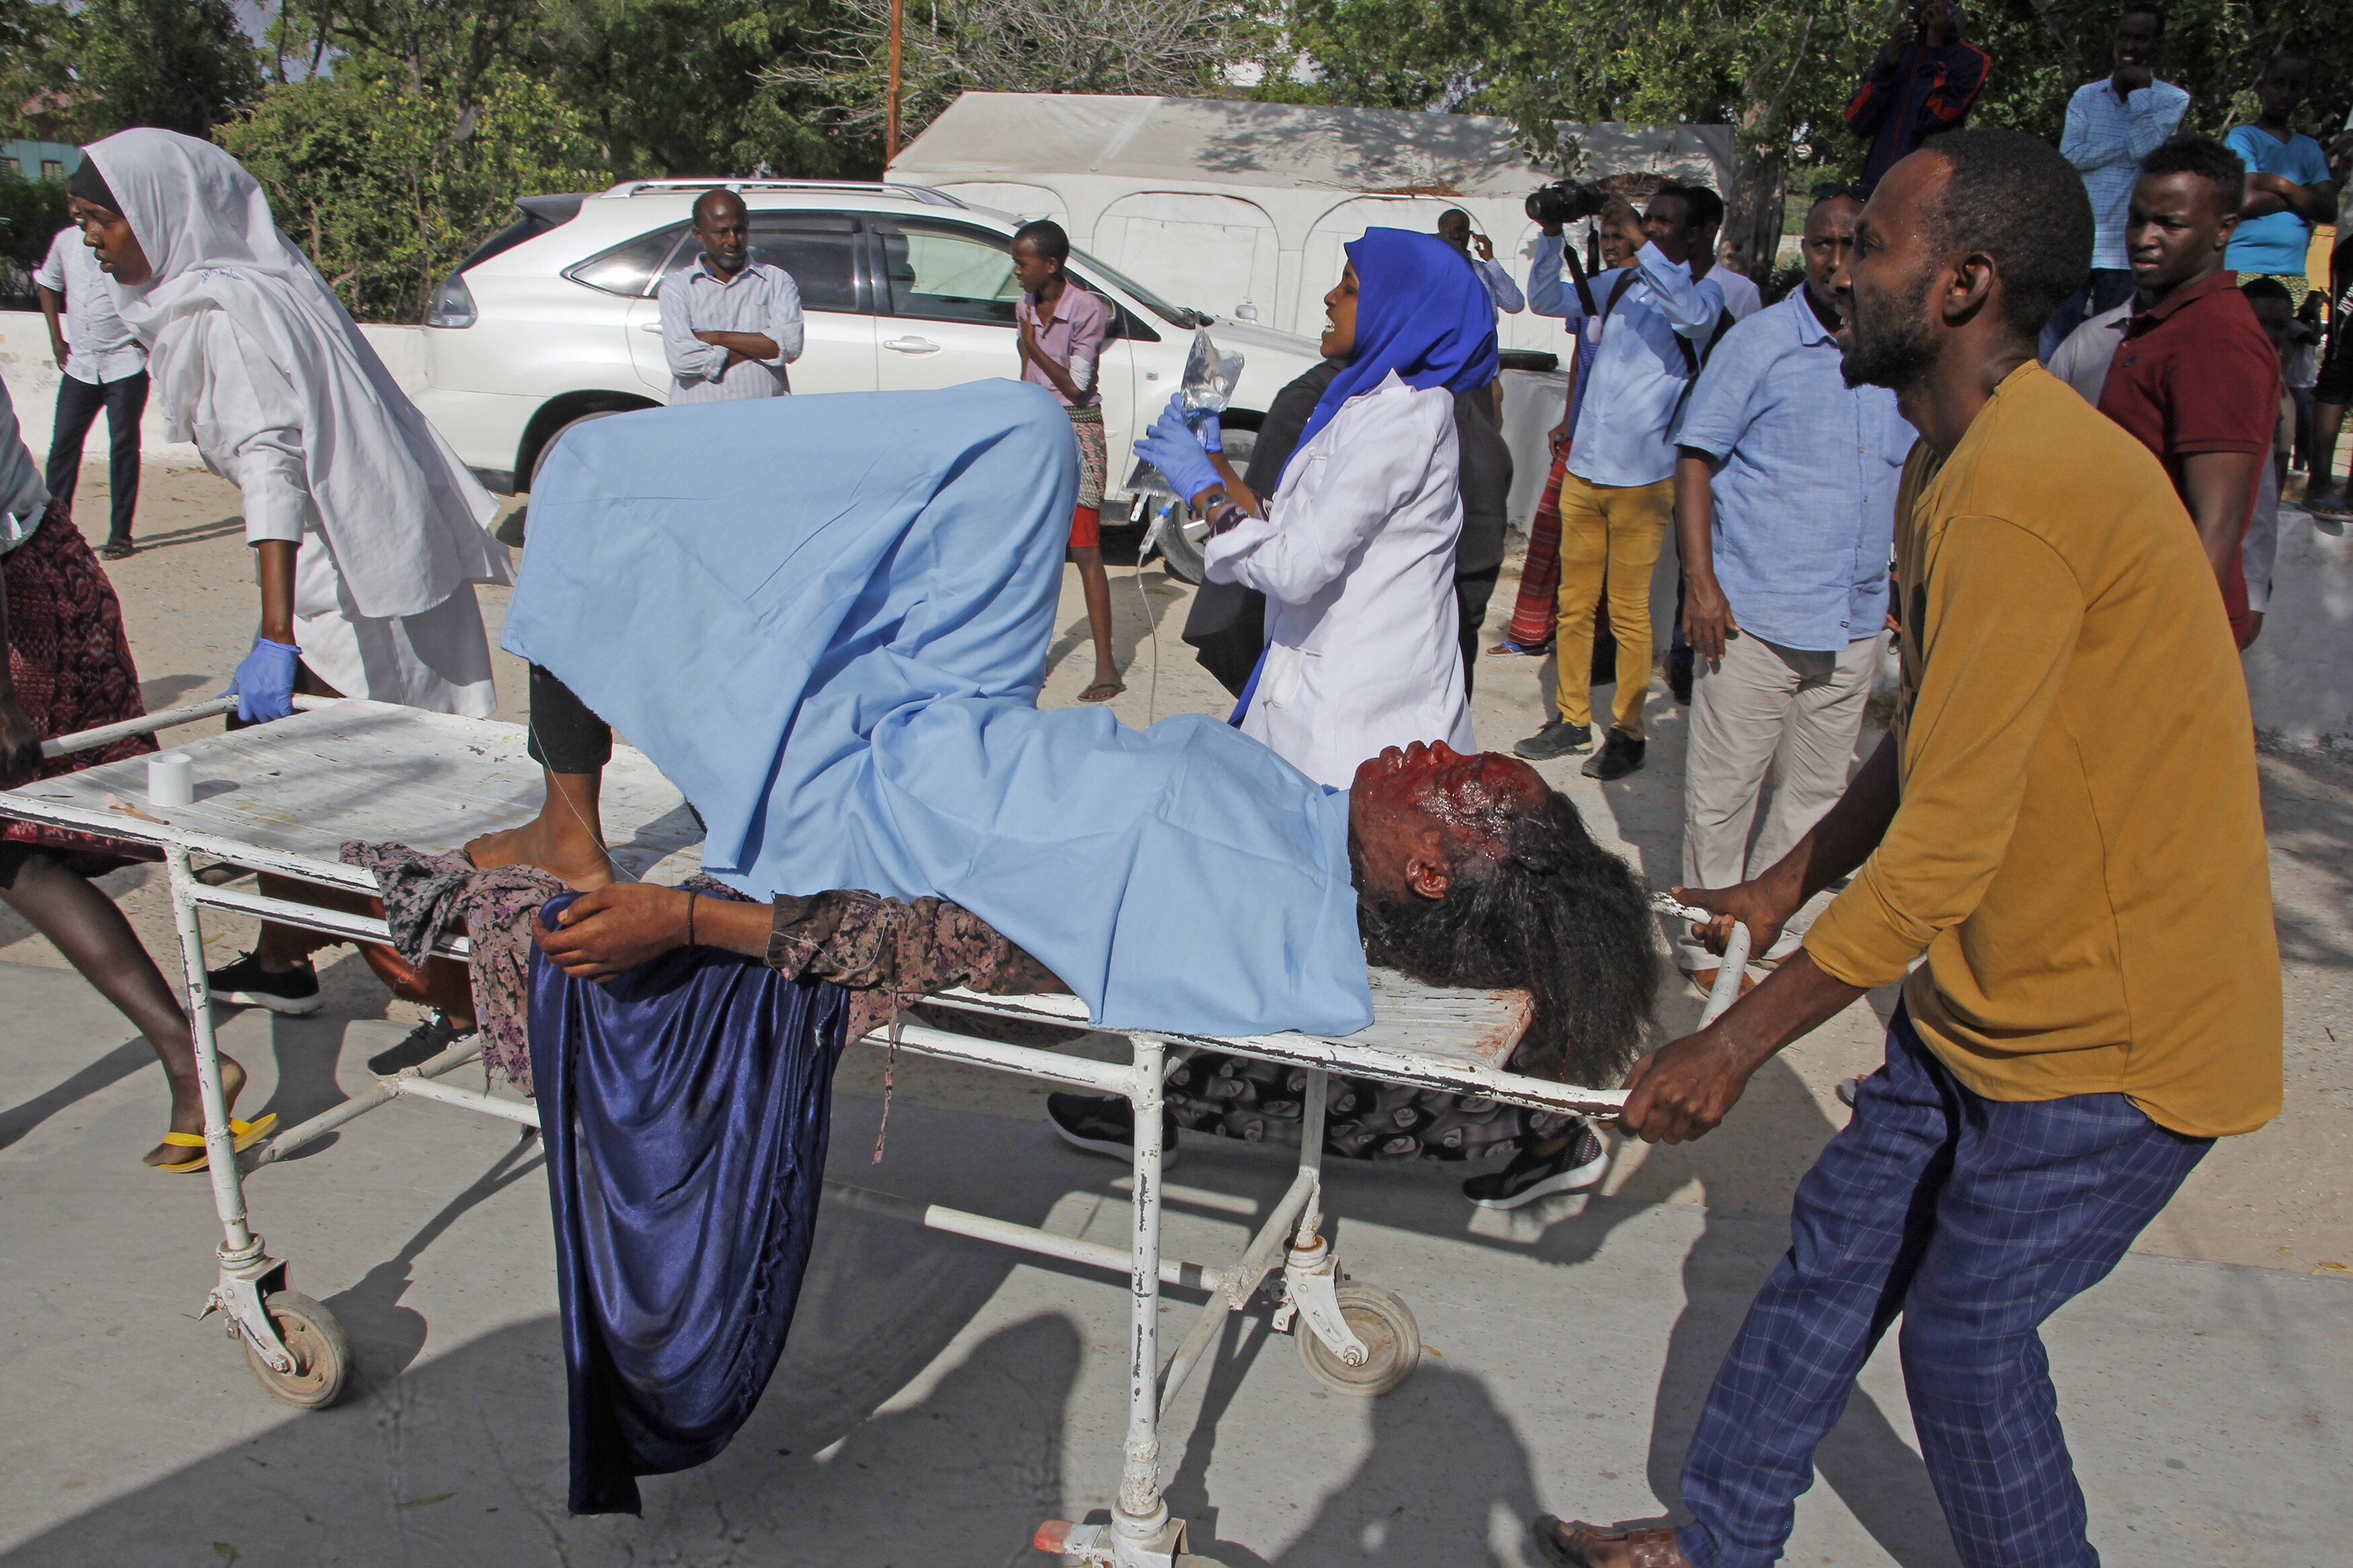 A victim of the attack is carried on a stretcher